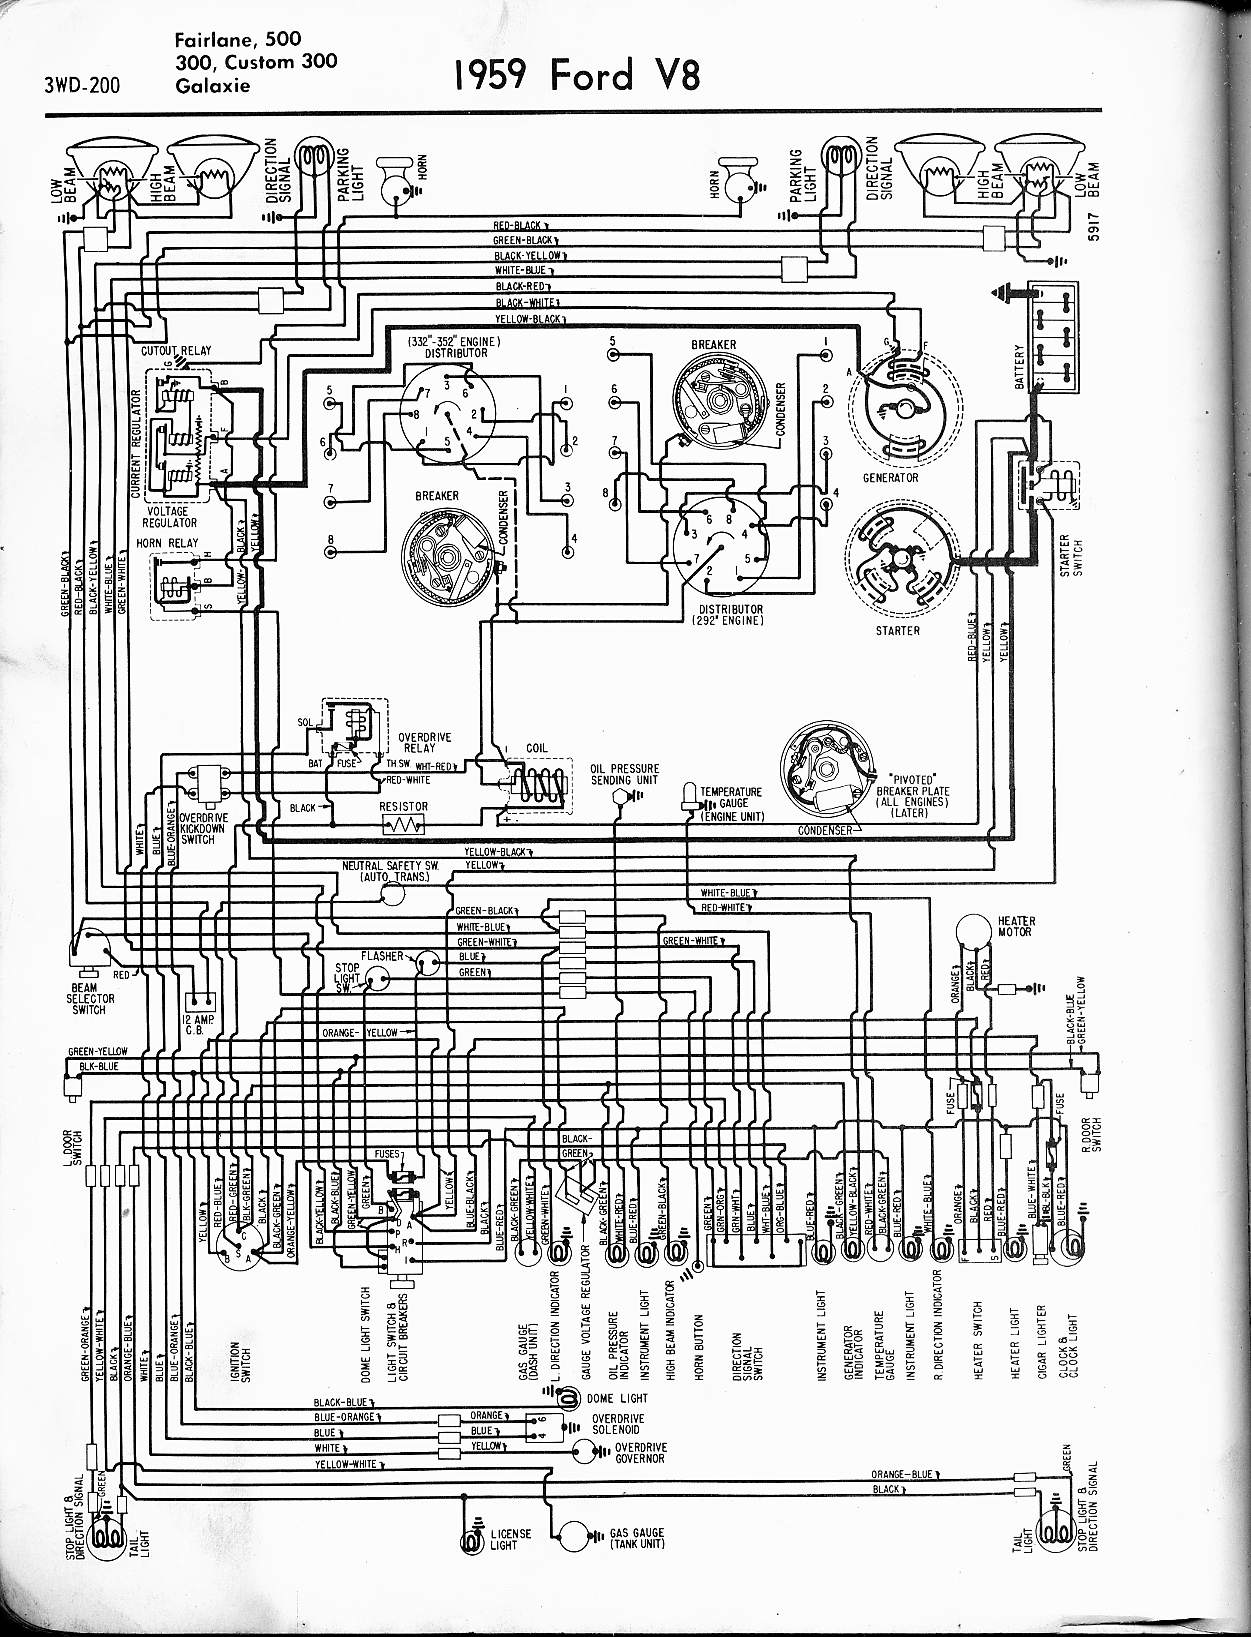 57 65 ford wiring diagrams rh oldcarmanualproject com 1955 Ford Fairlane Wiring-Diagram 1955 Ford Fairlane Wiring-Diagram